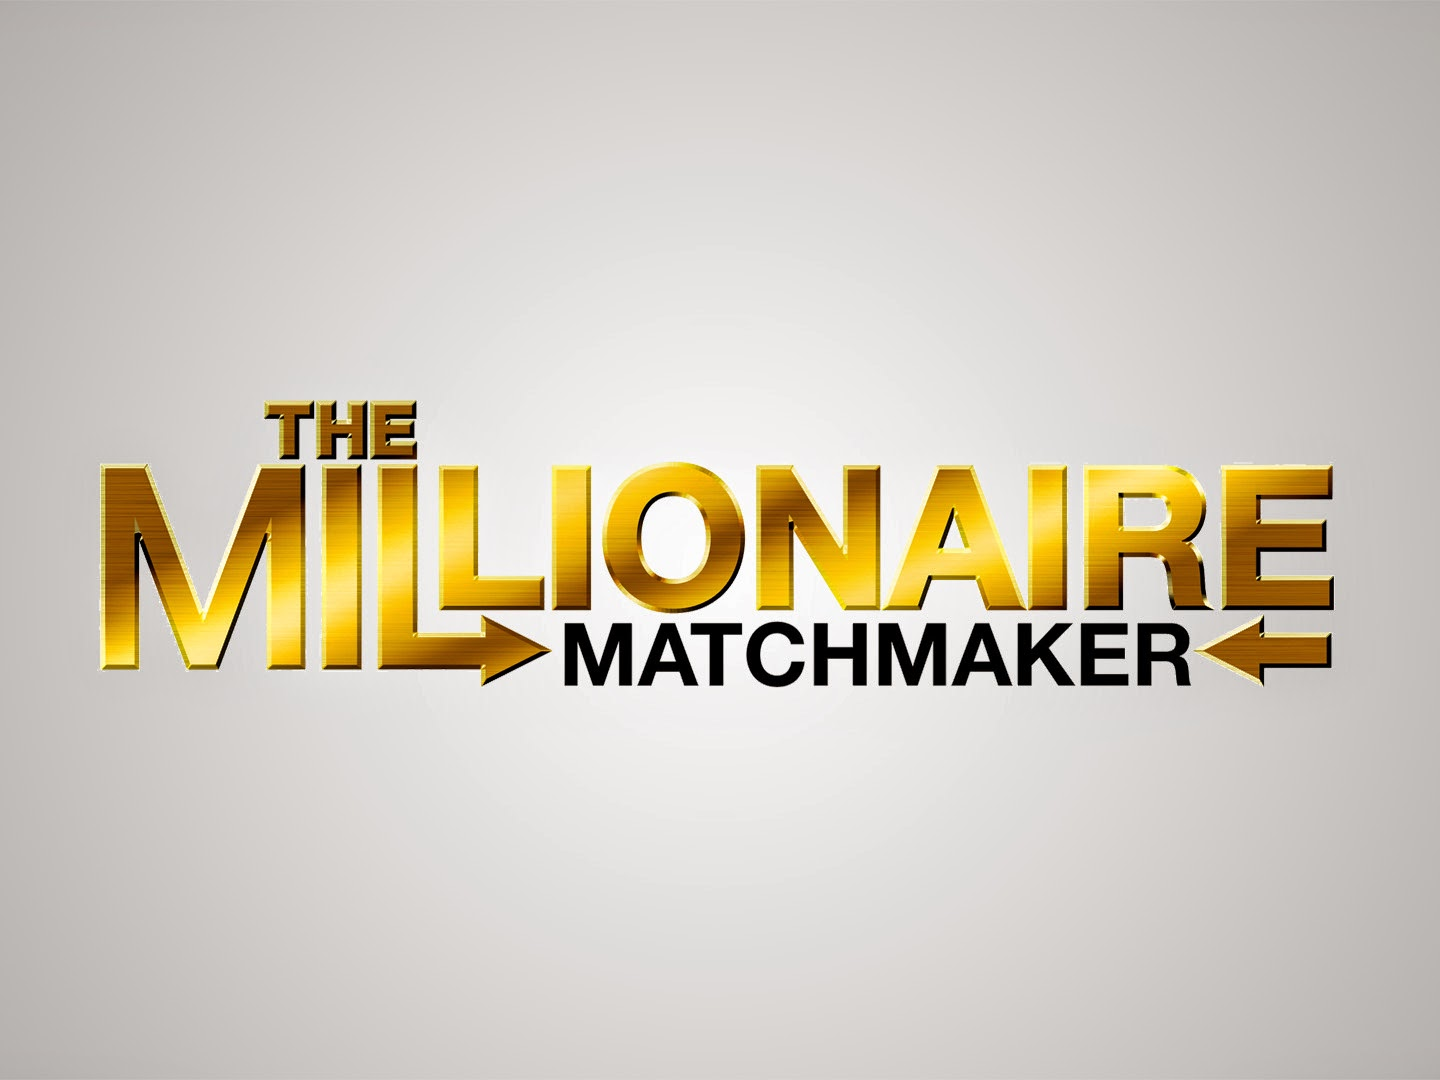 matchmaking services for millionaires